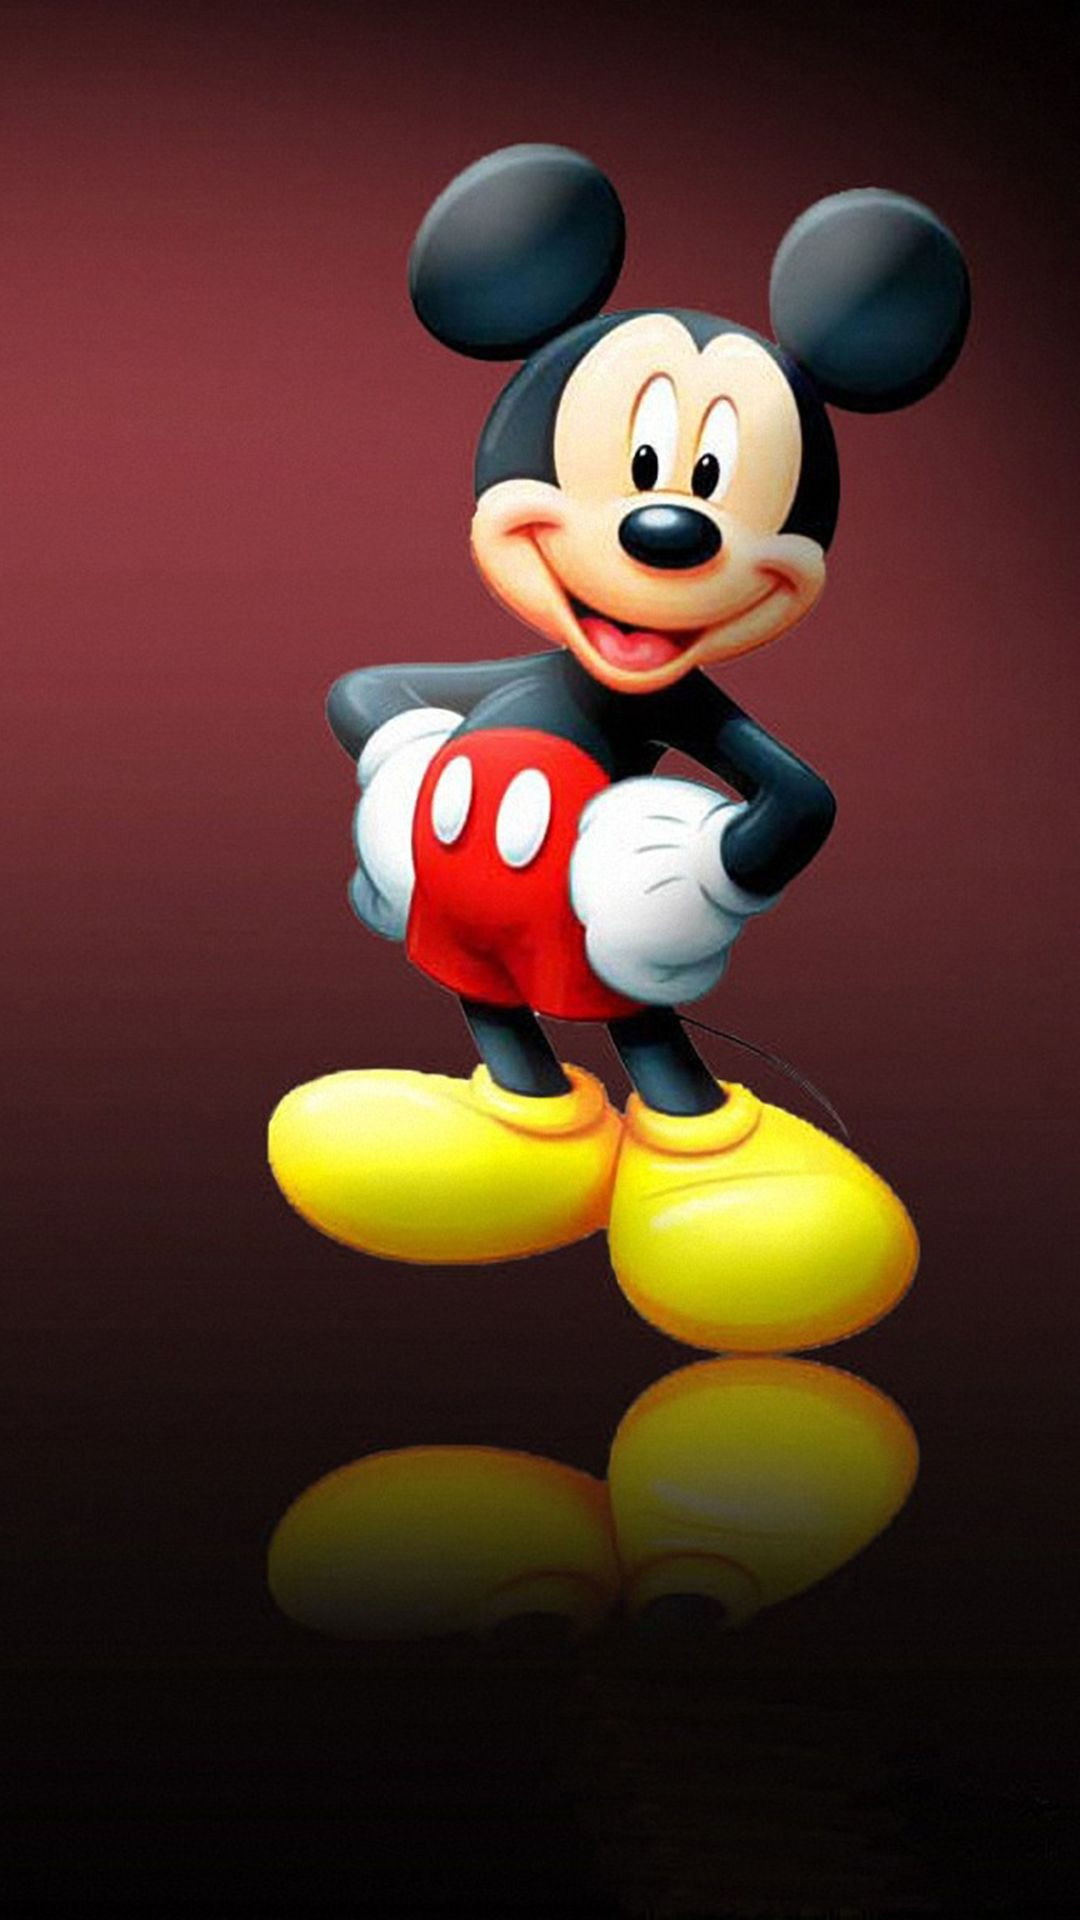 Cute Mickey Mouse Wallpaper Hd in 2020 Mickey mouse